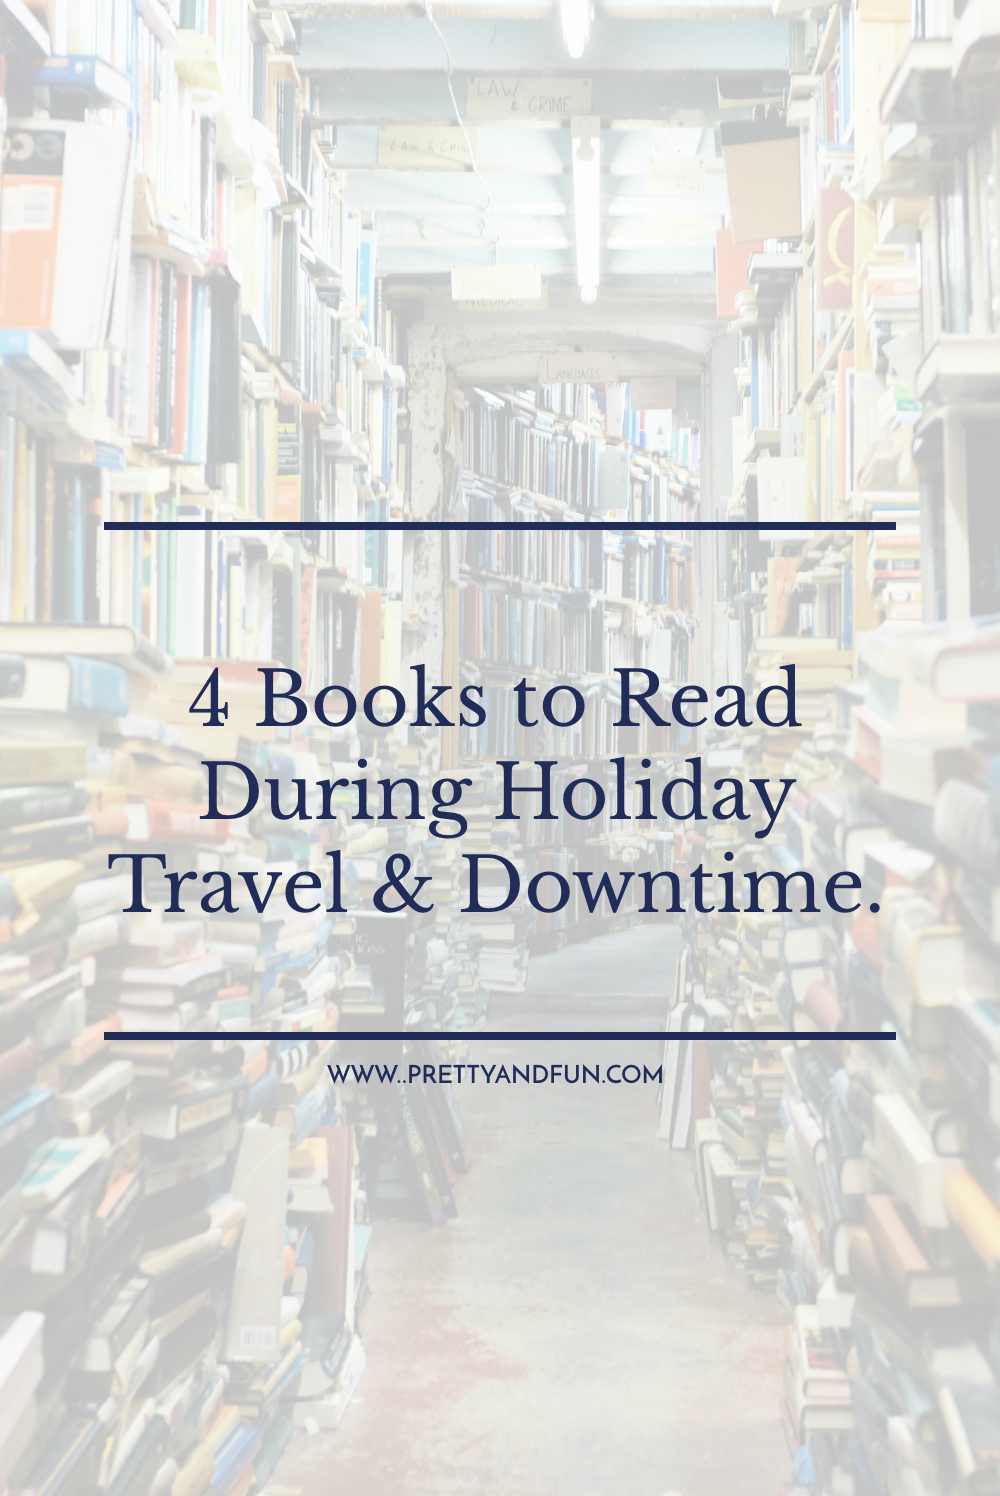 4 Books to Read During Holiday Travel & Downtime.